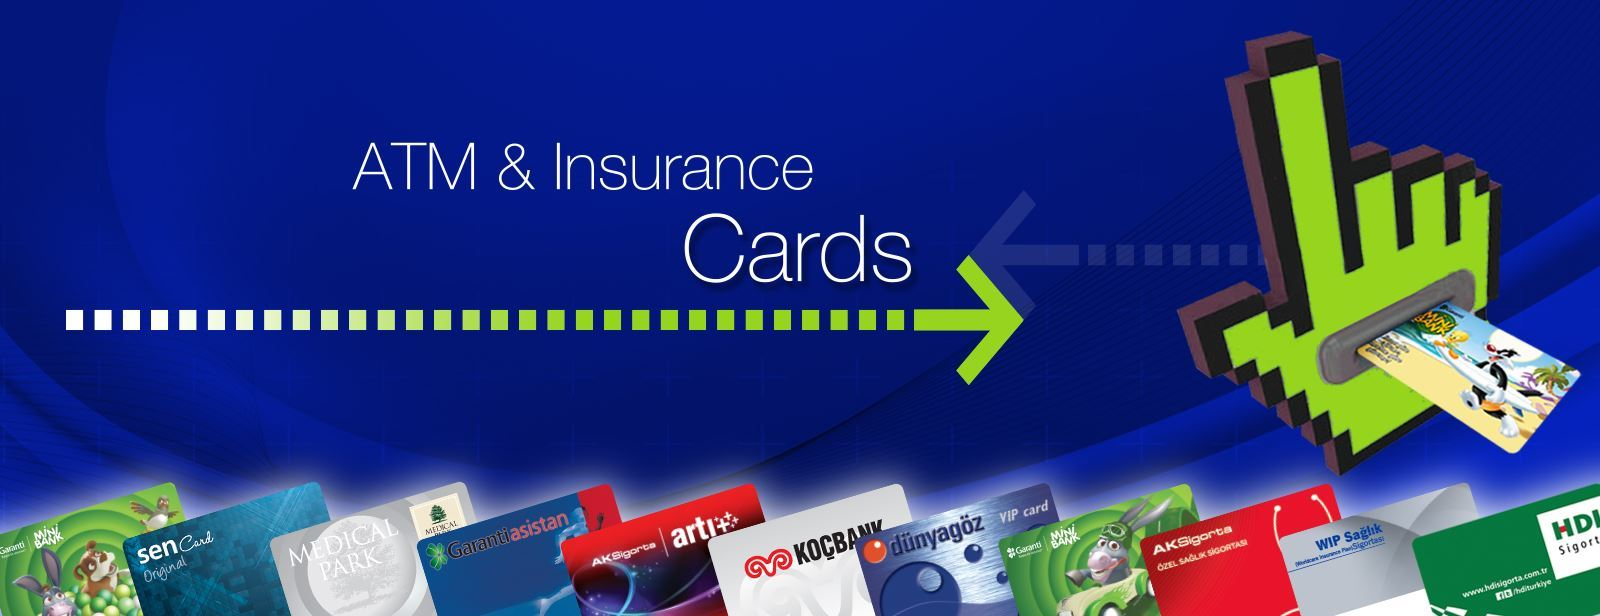 ATM & Insurance Cards